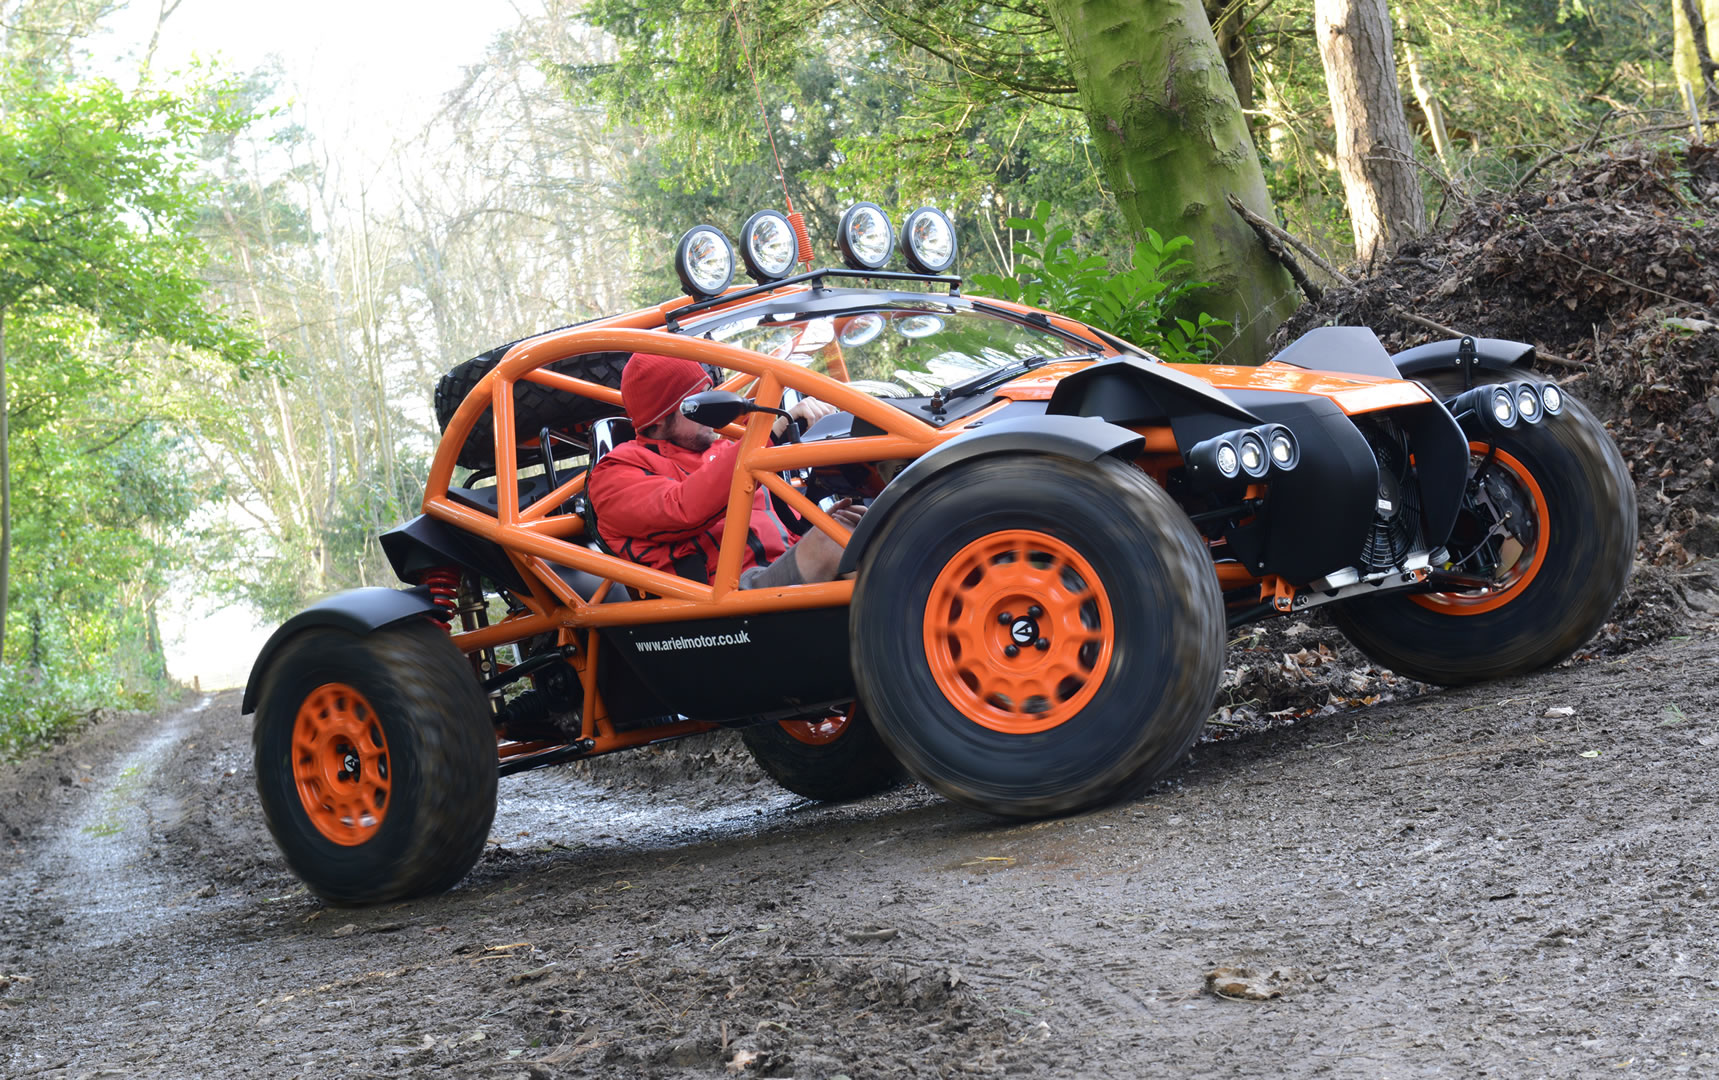 The Ariel Nomad has a Honda engine with 235hp.